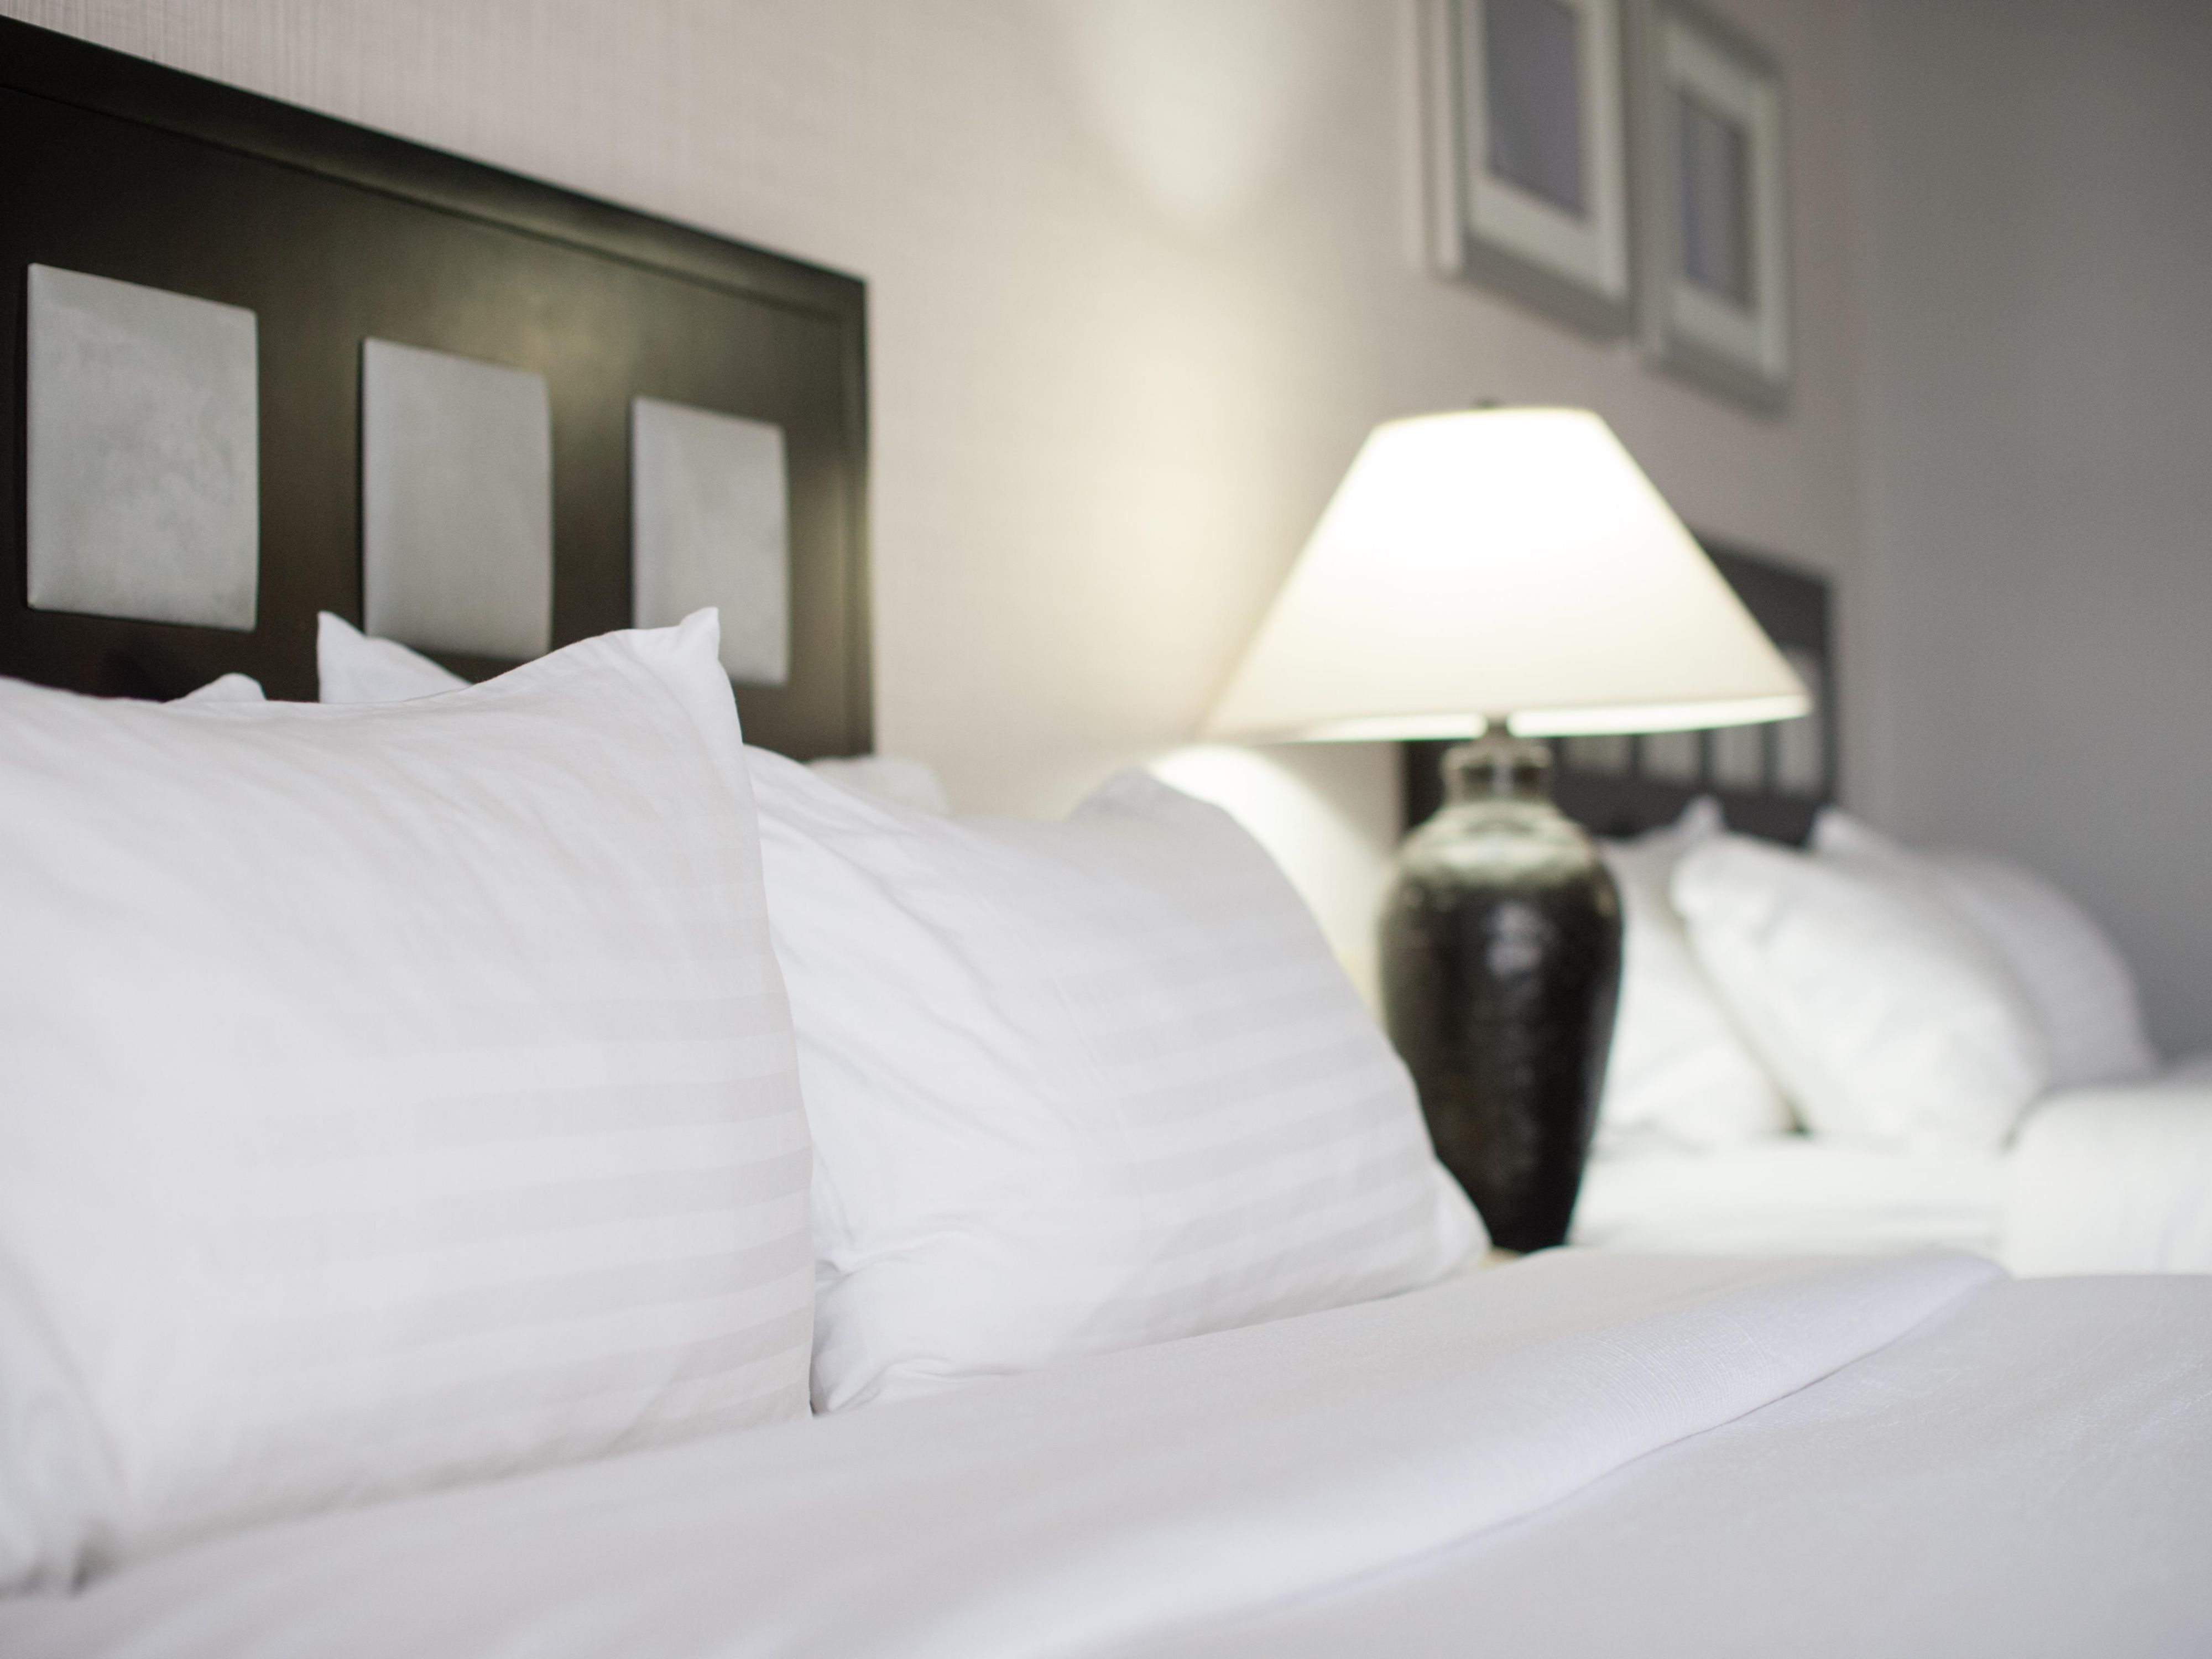 Enjoy the comfort of our new pillows and beds in our guest rooms